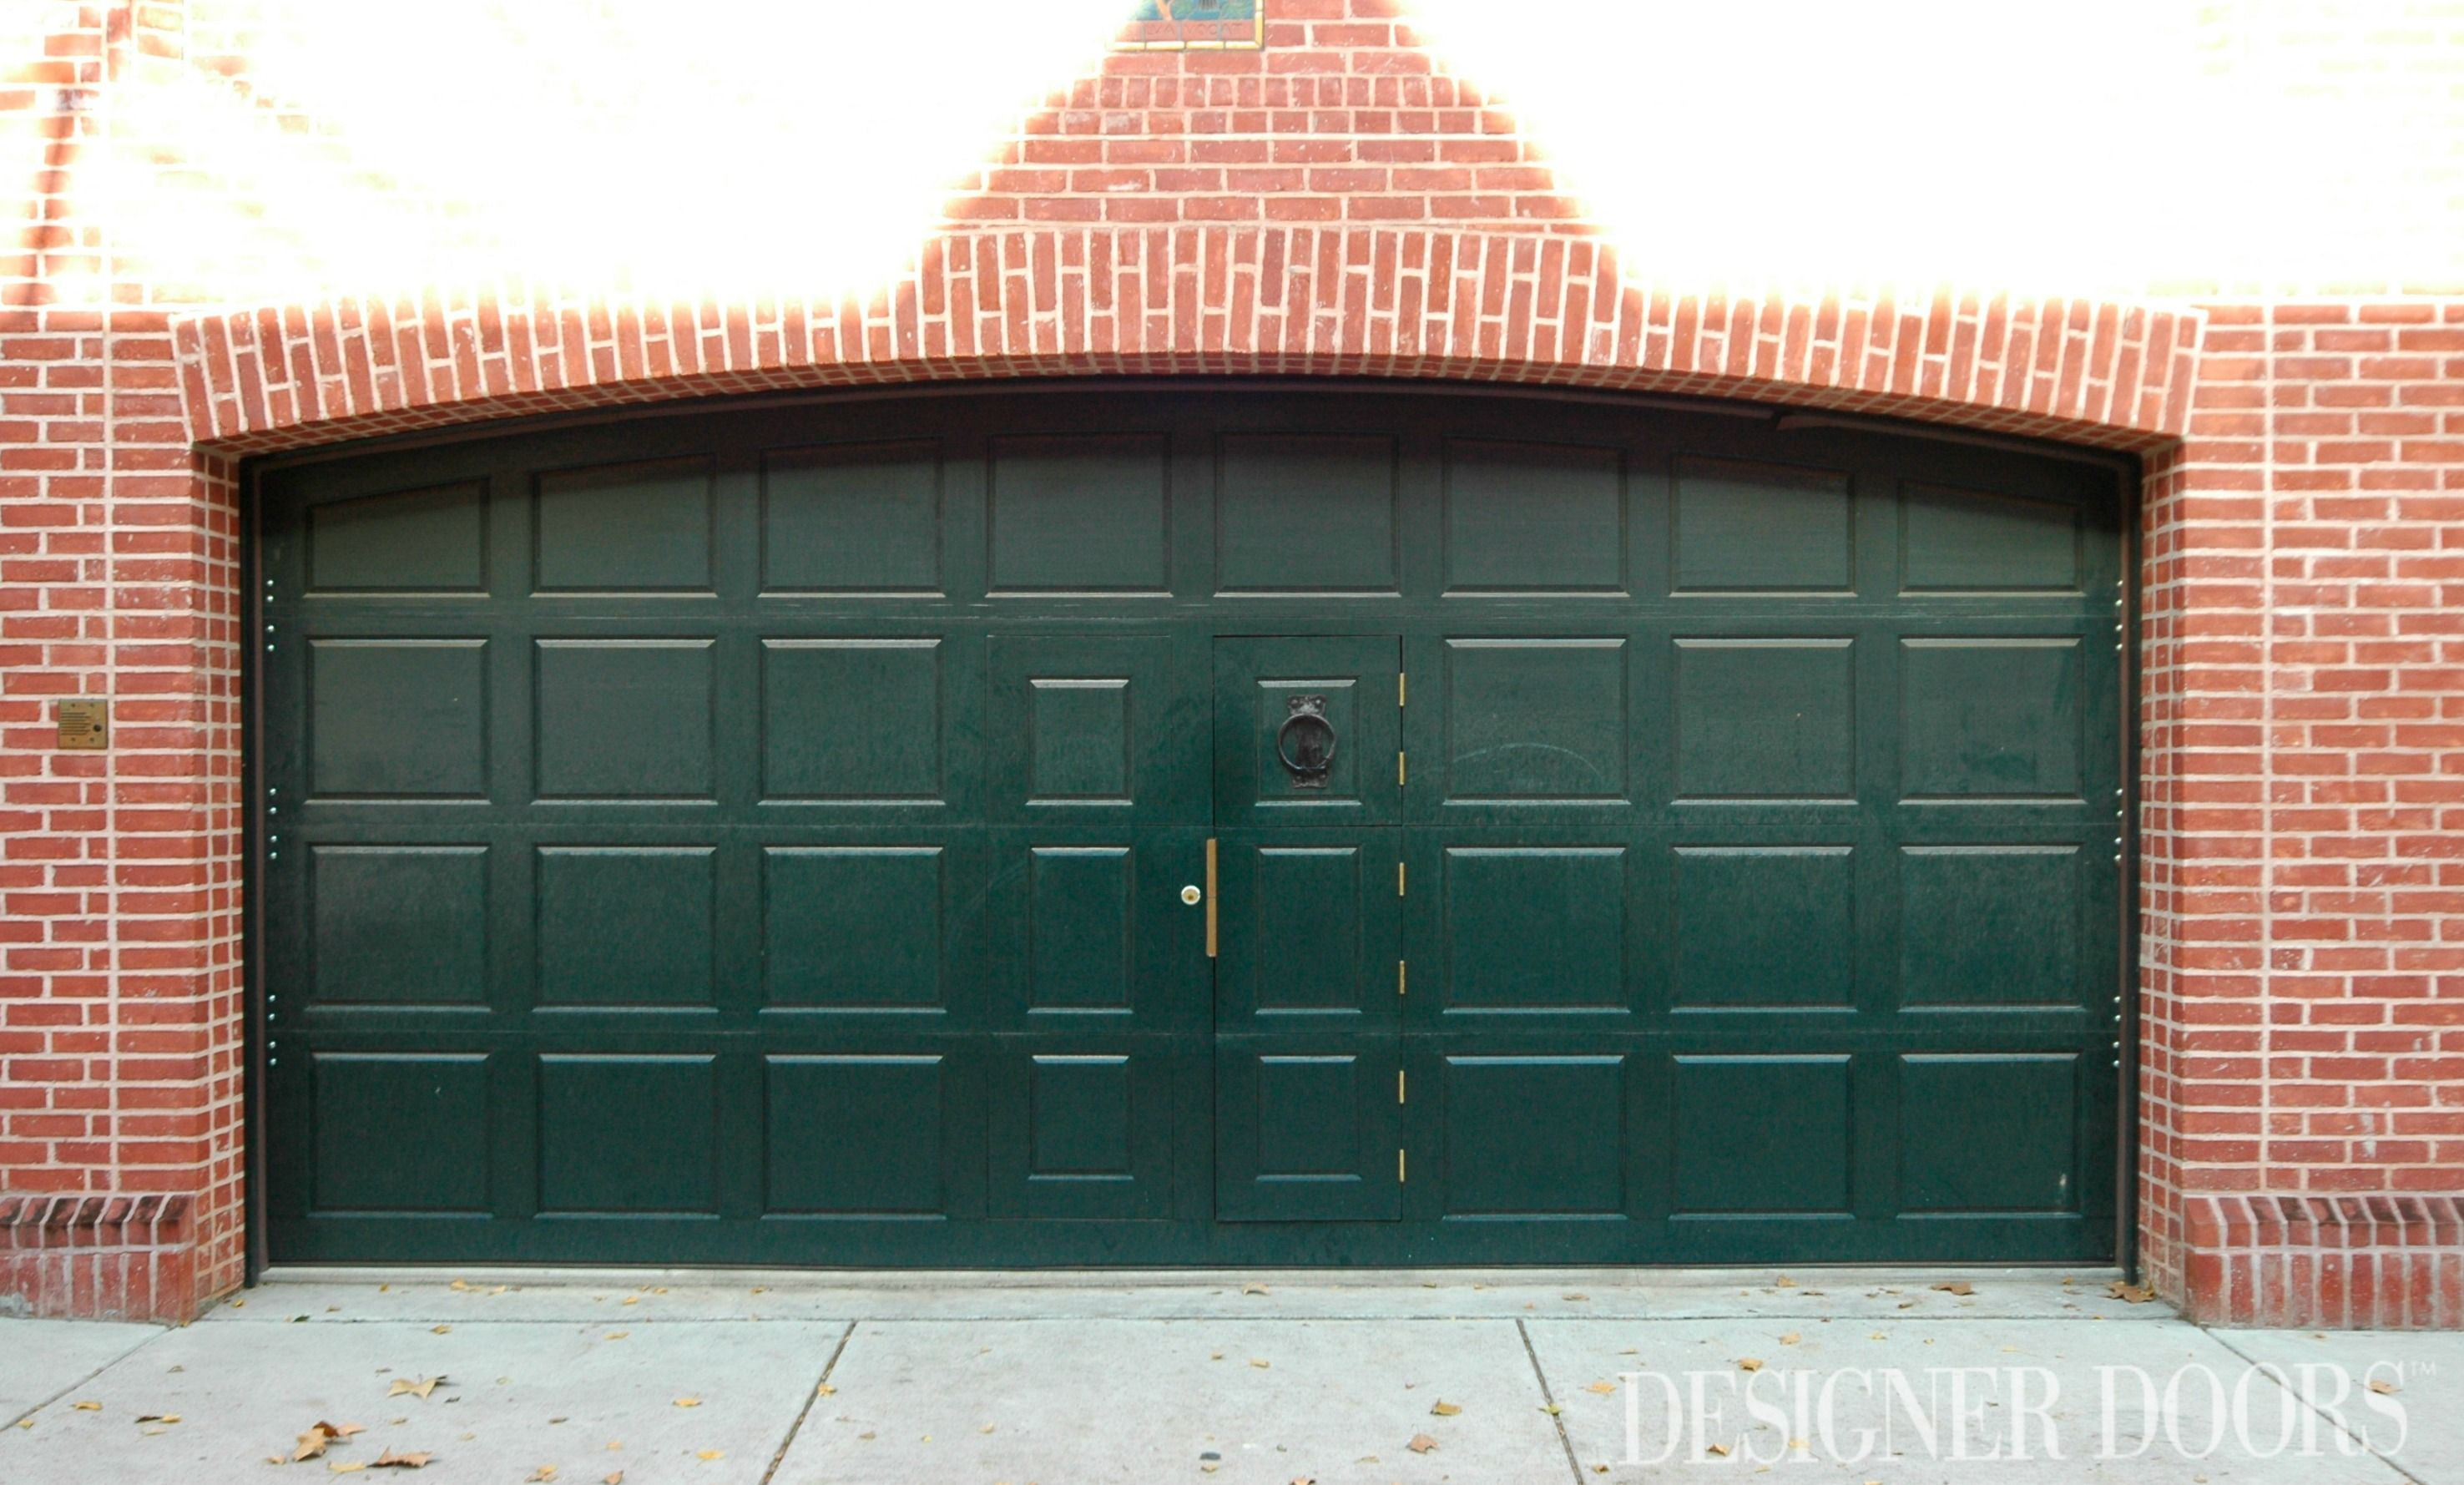 With a wicket door you can access your garage without opening the overhead door. & With a wicket door you can access your garage without opening the ... pezcame.com